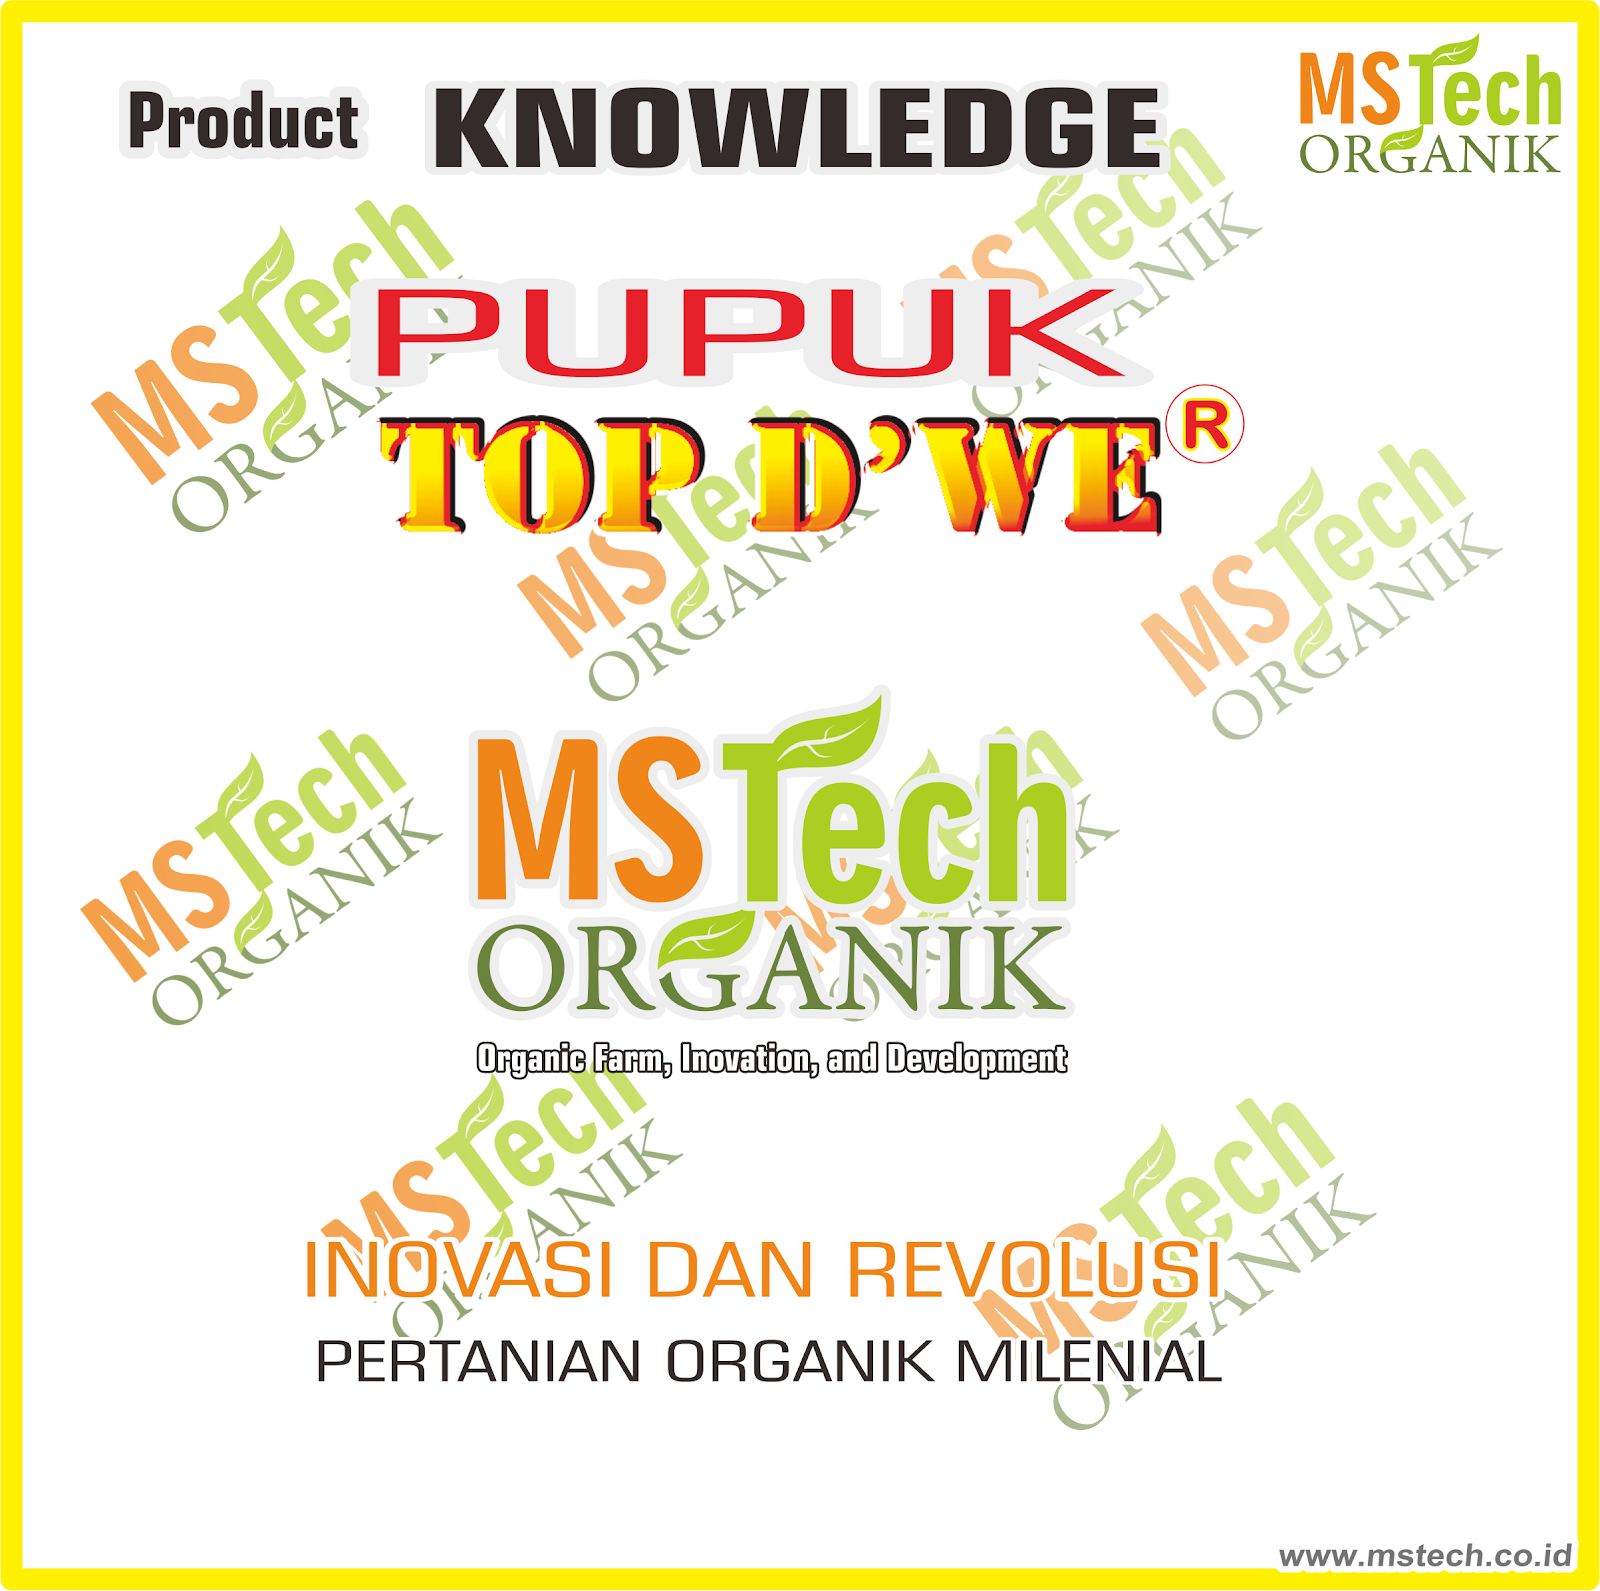 Product Knowledge TOP DWE